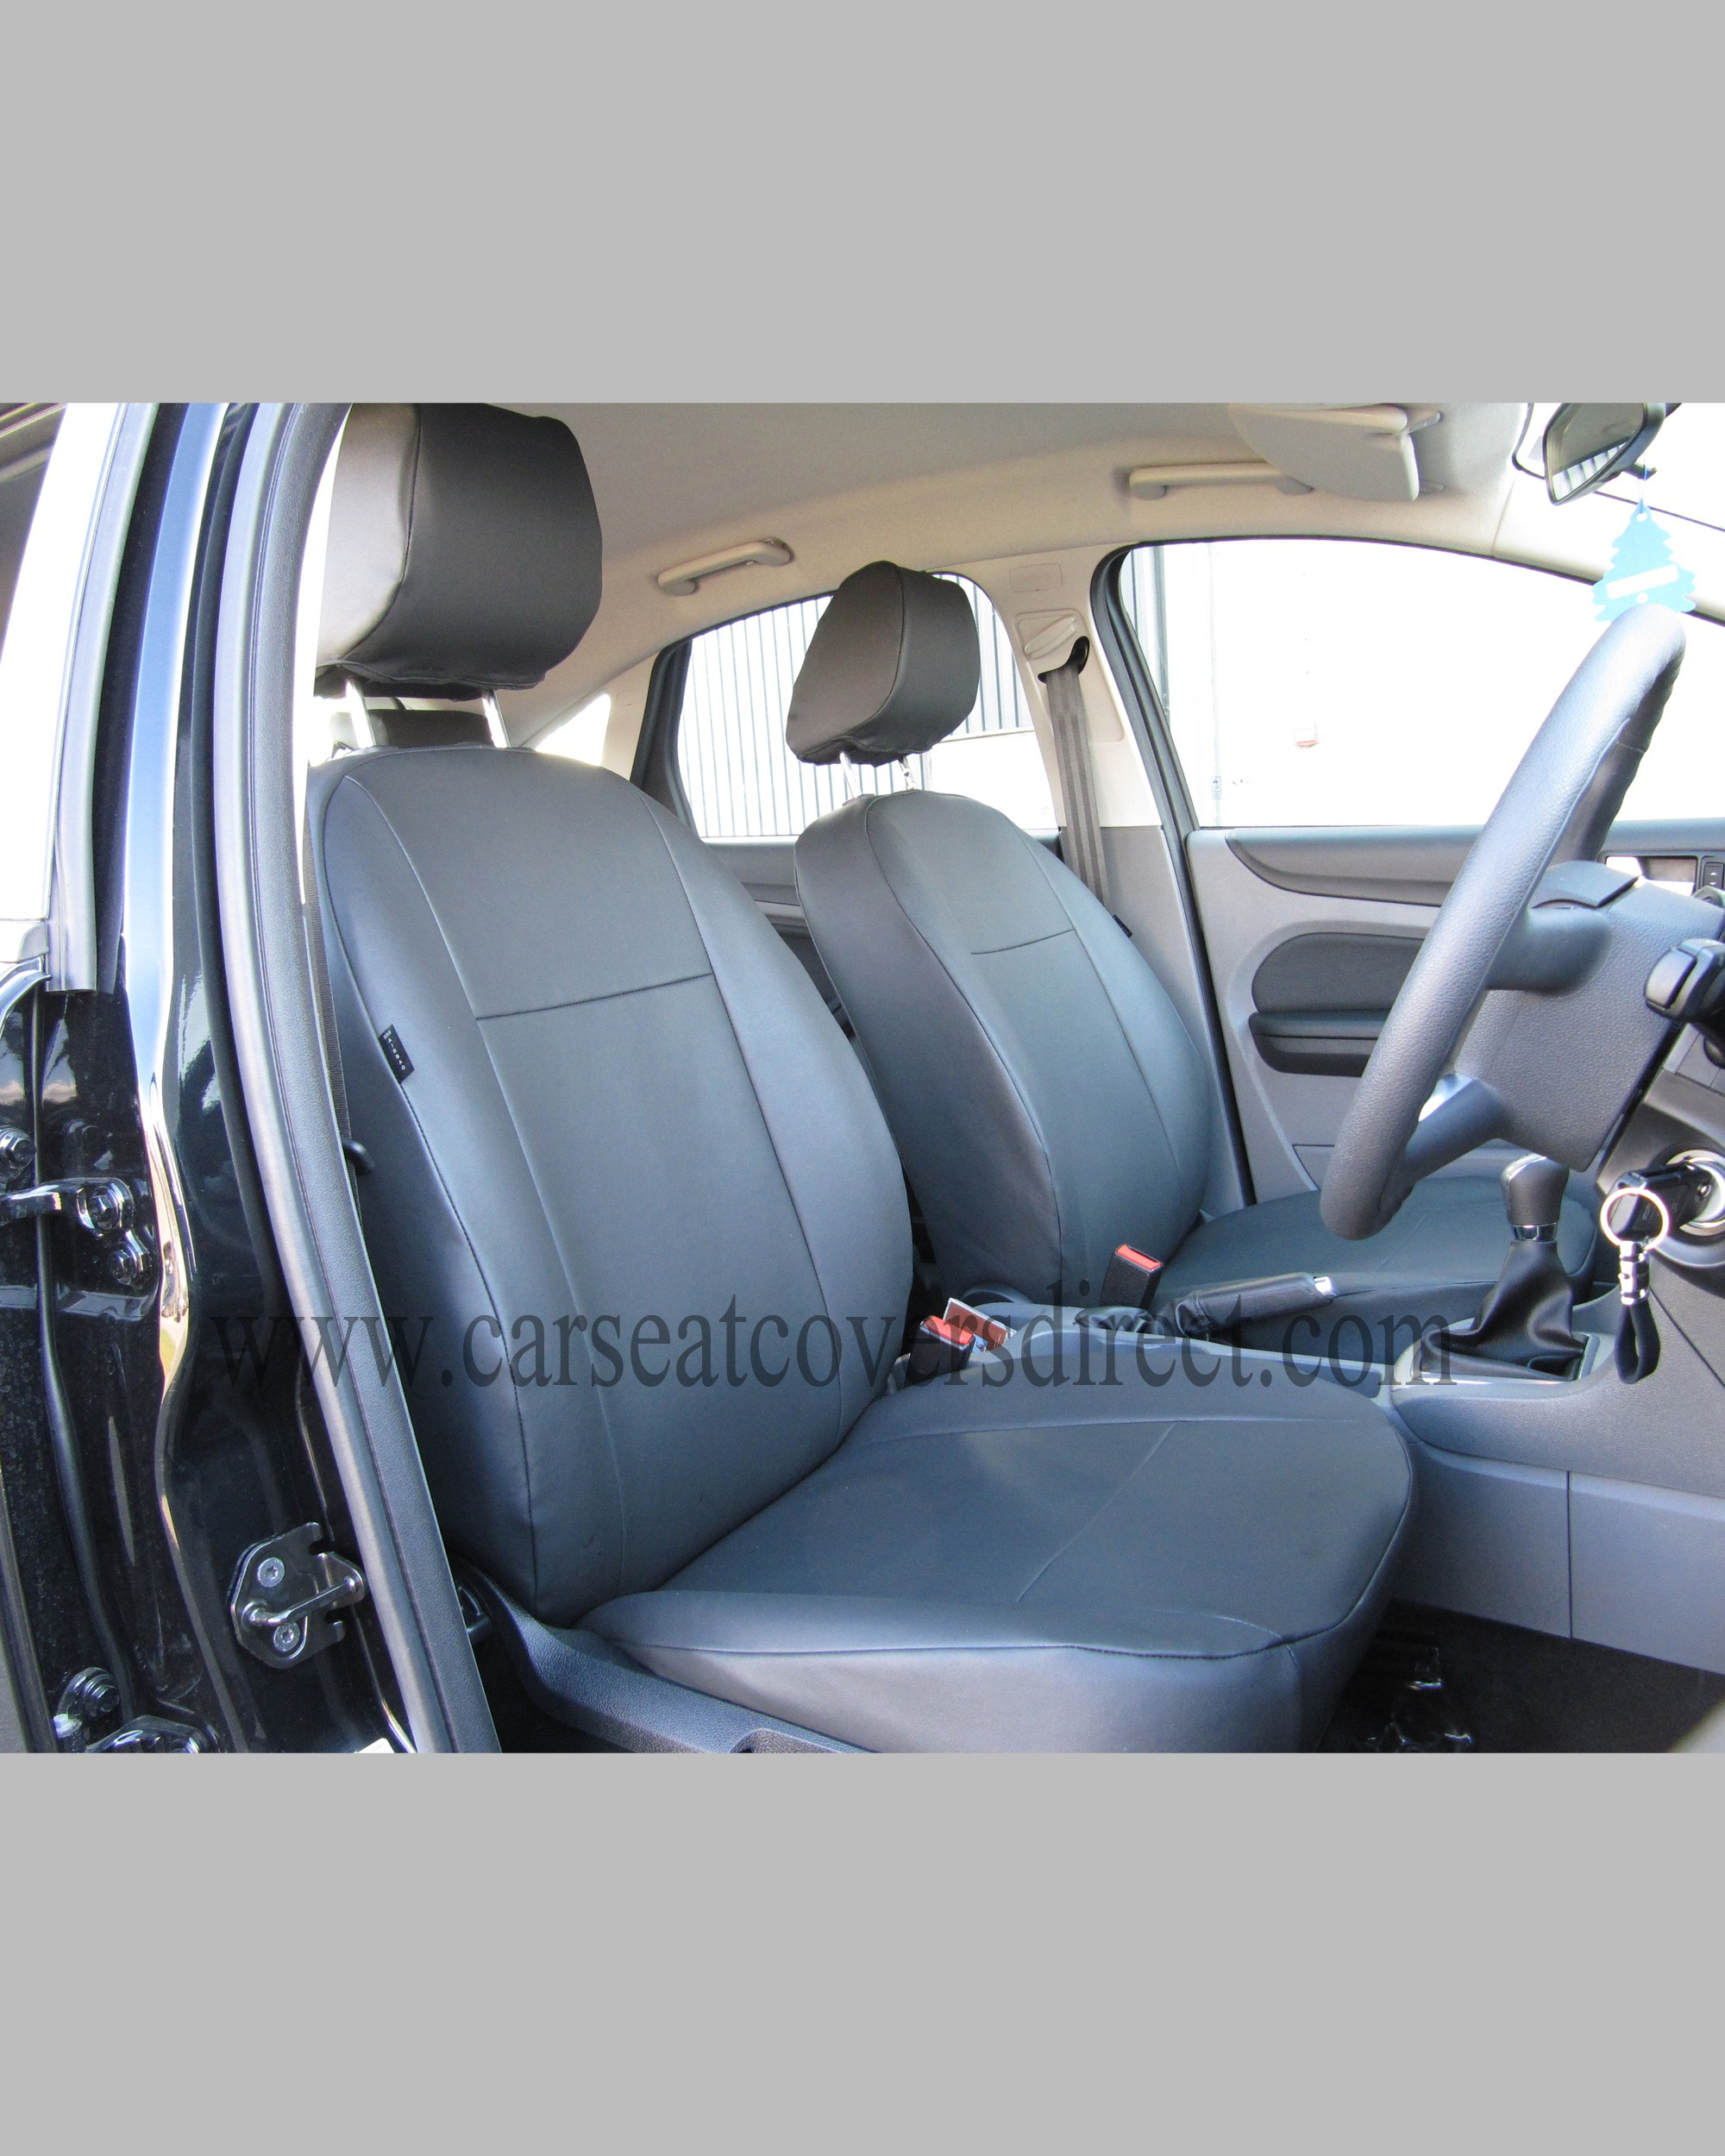 Ford Focus Front Seats With Seat Cover